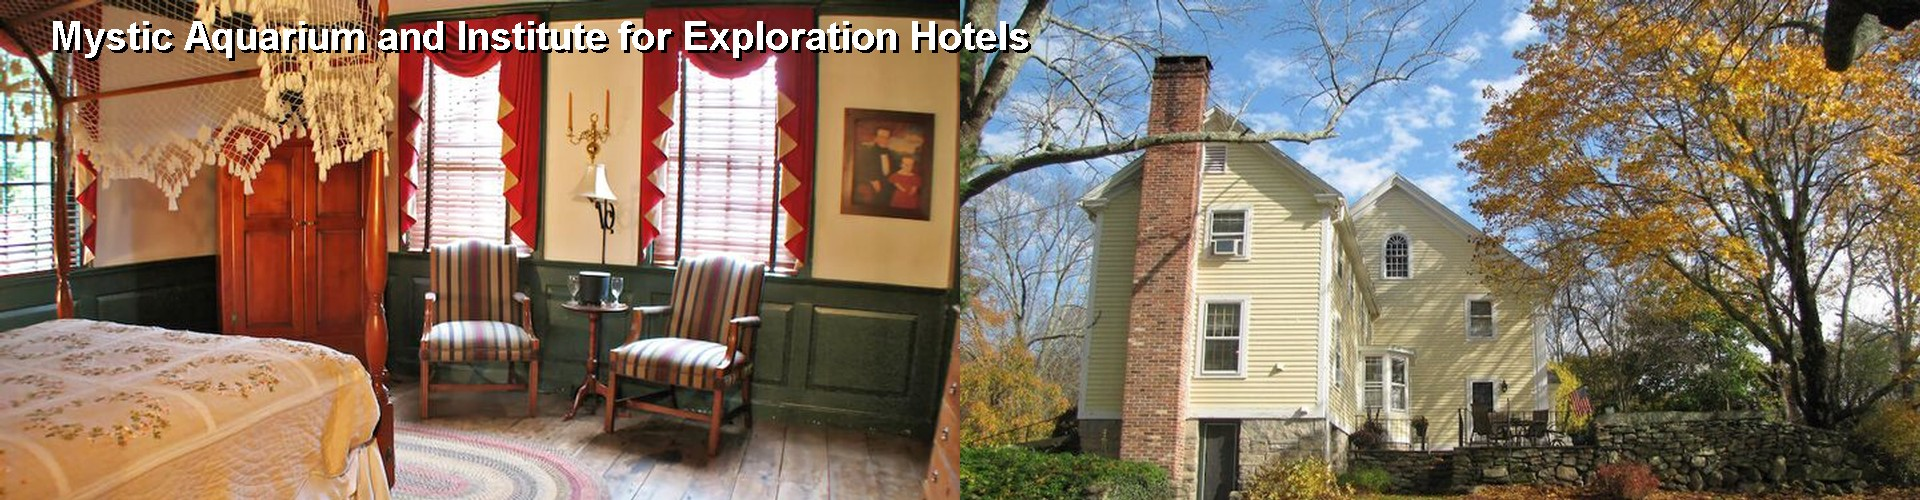 5 Best Hotels near Mystic Aquarium and Institute for Exploration